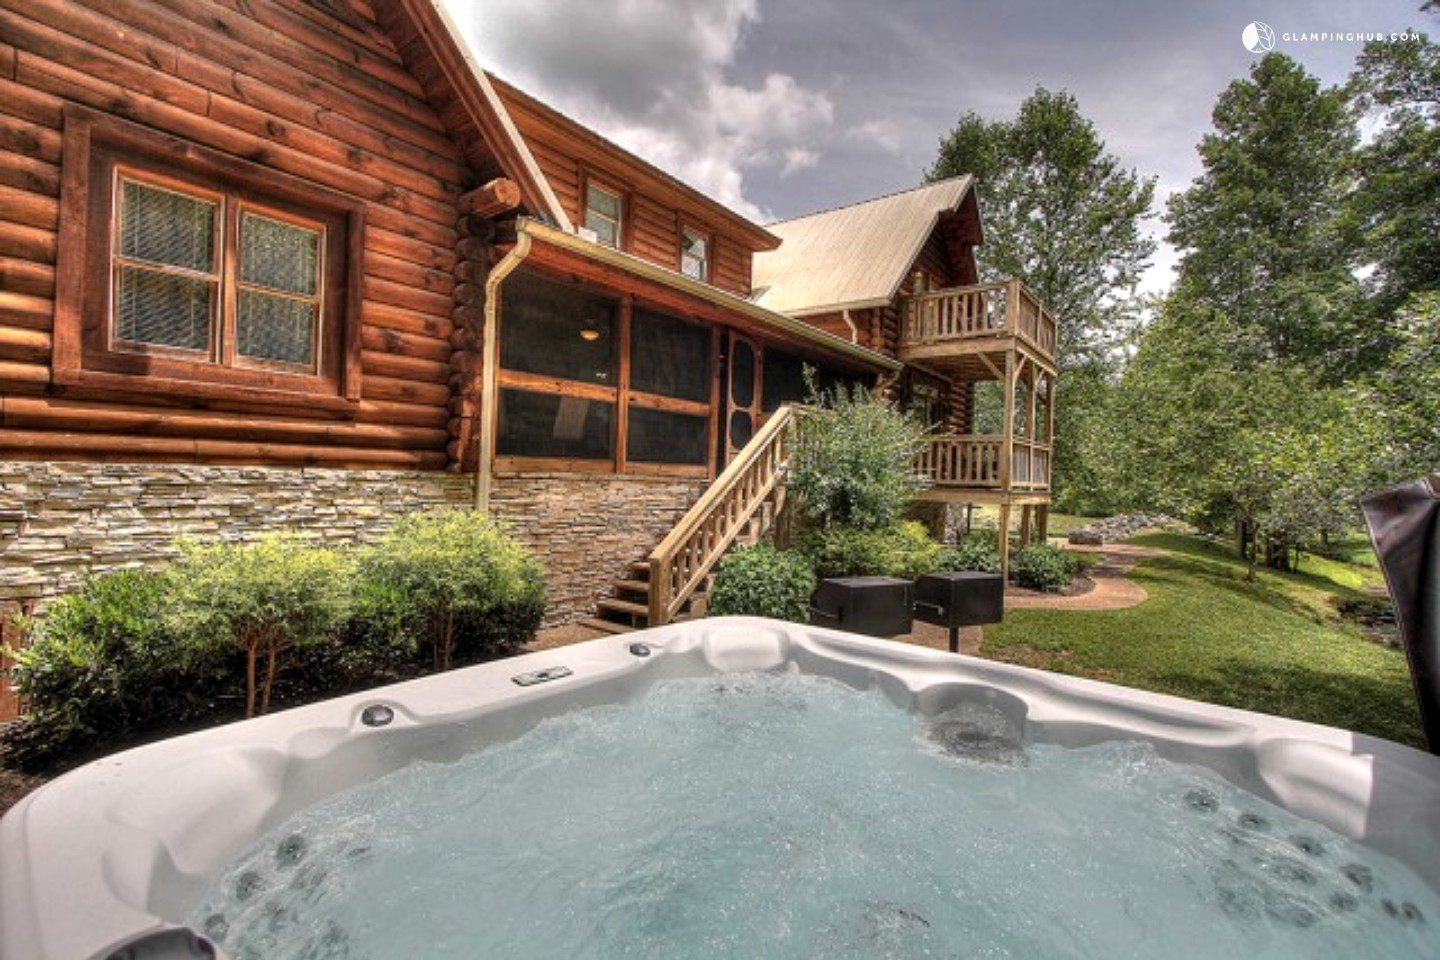 Luxury cabin rental near the great smoky mountains for Smoky mountain ridge cabins